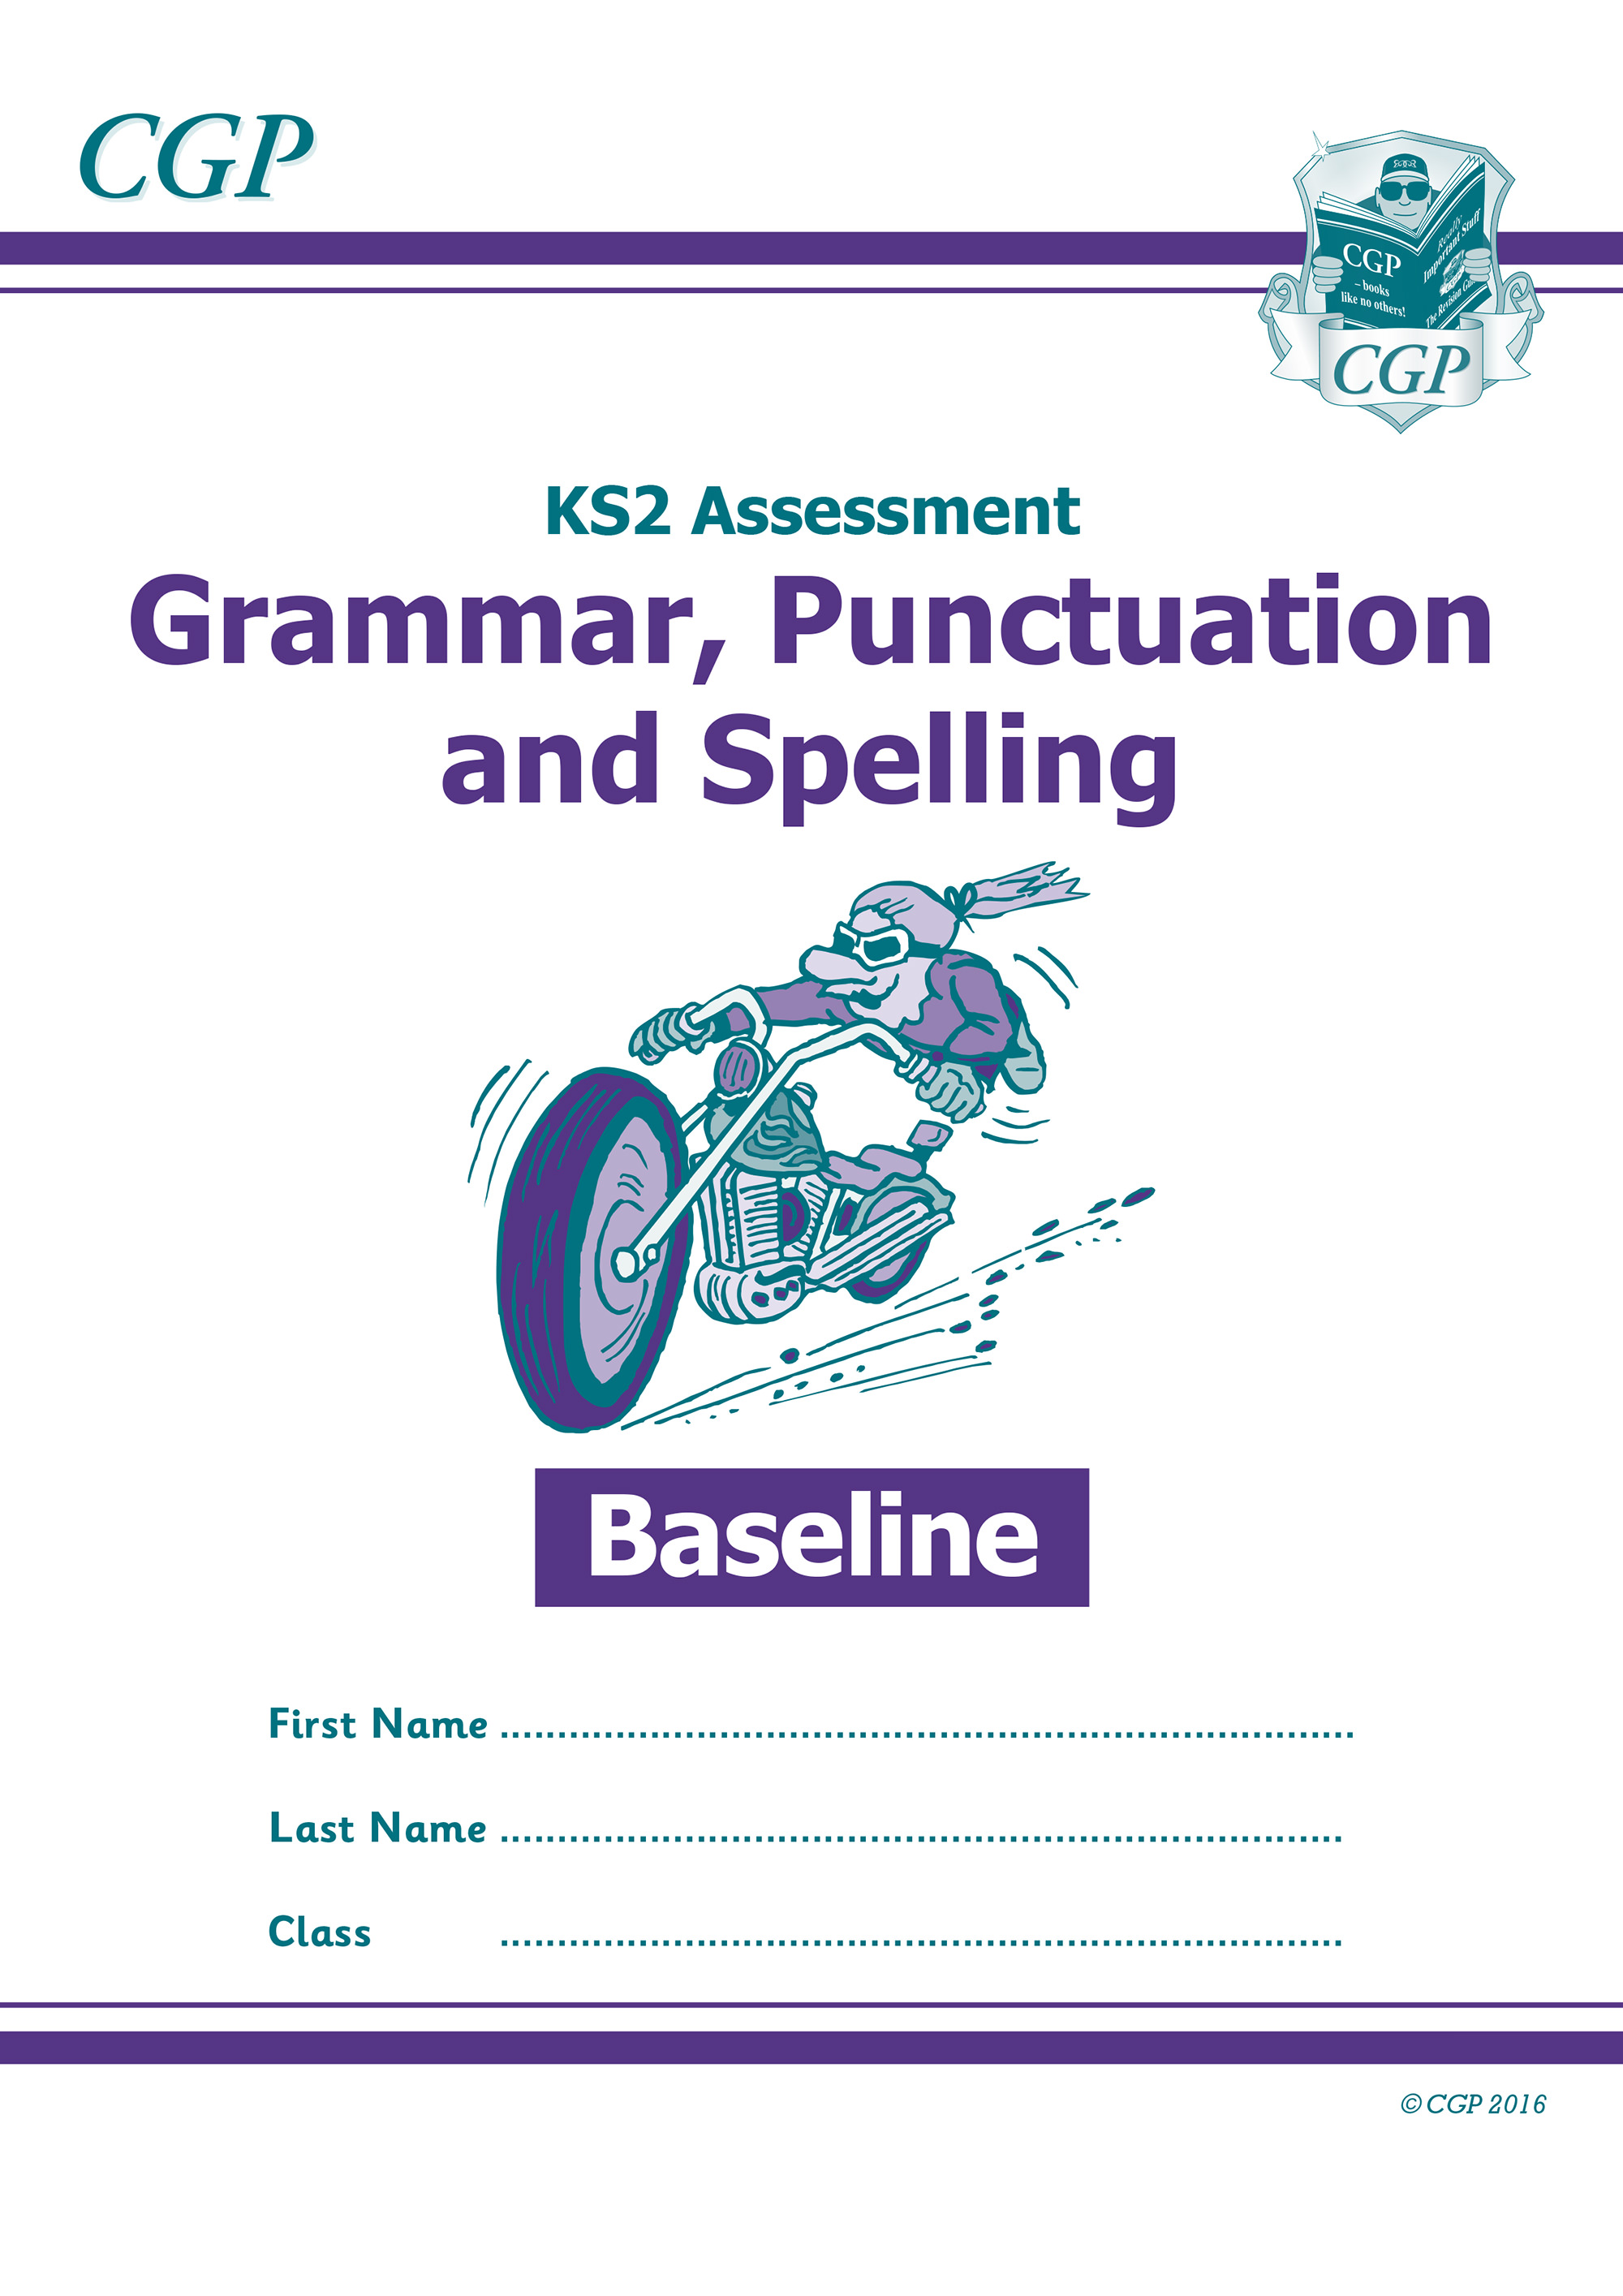 EBGP21 - New KS2 Assessment: Spelling, Punctuation & Grammar - Baseline Test